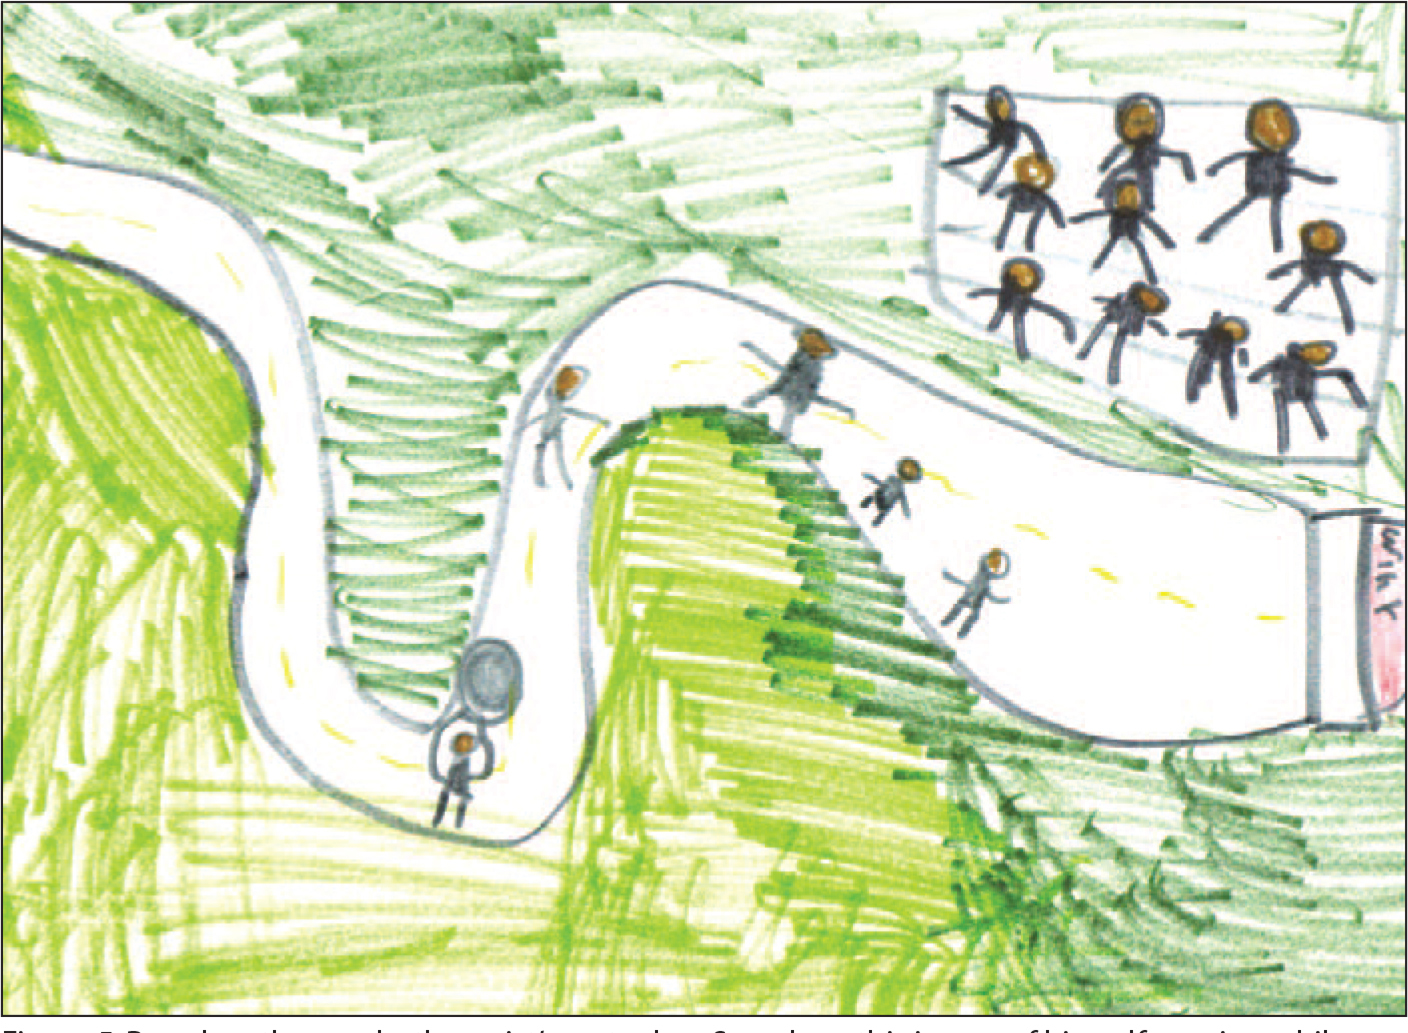 Based on the psychotherapist's metaphor, Sam drew this image of himself running while carrying a boulder, a situation that puts him at a disadvantage compared with the other runners in the race. He inserted the cheering spectators on his own.